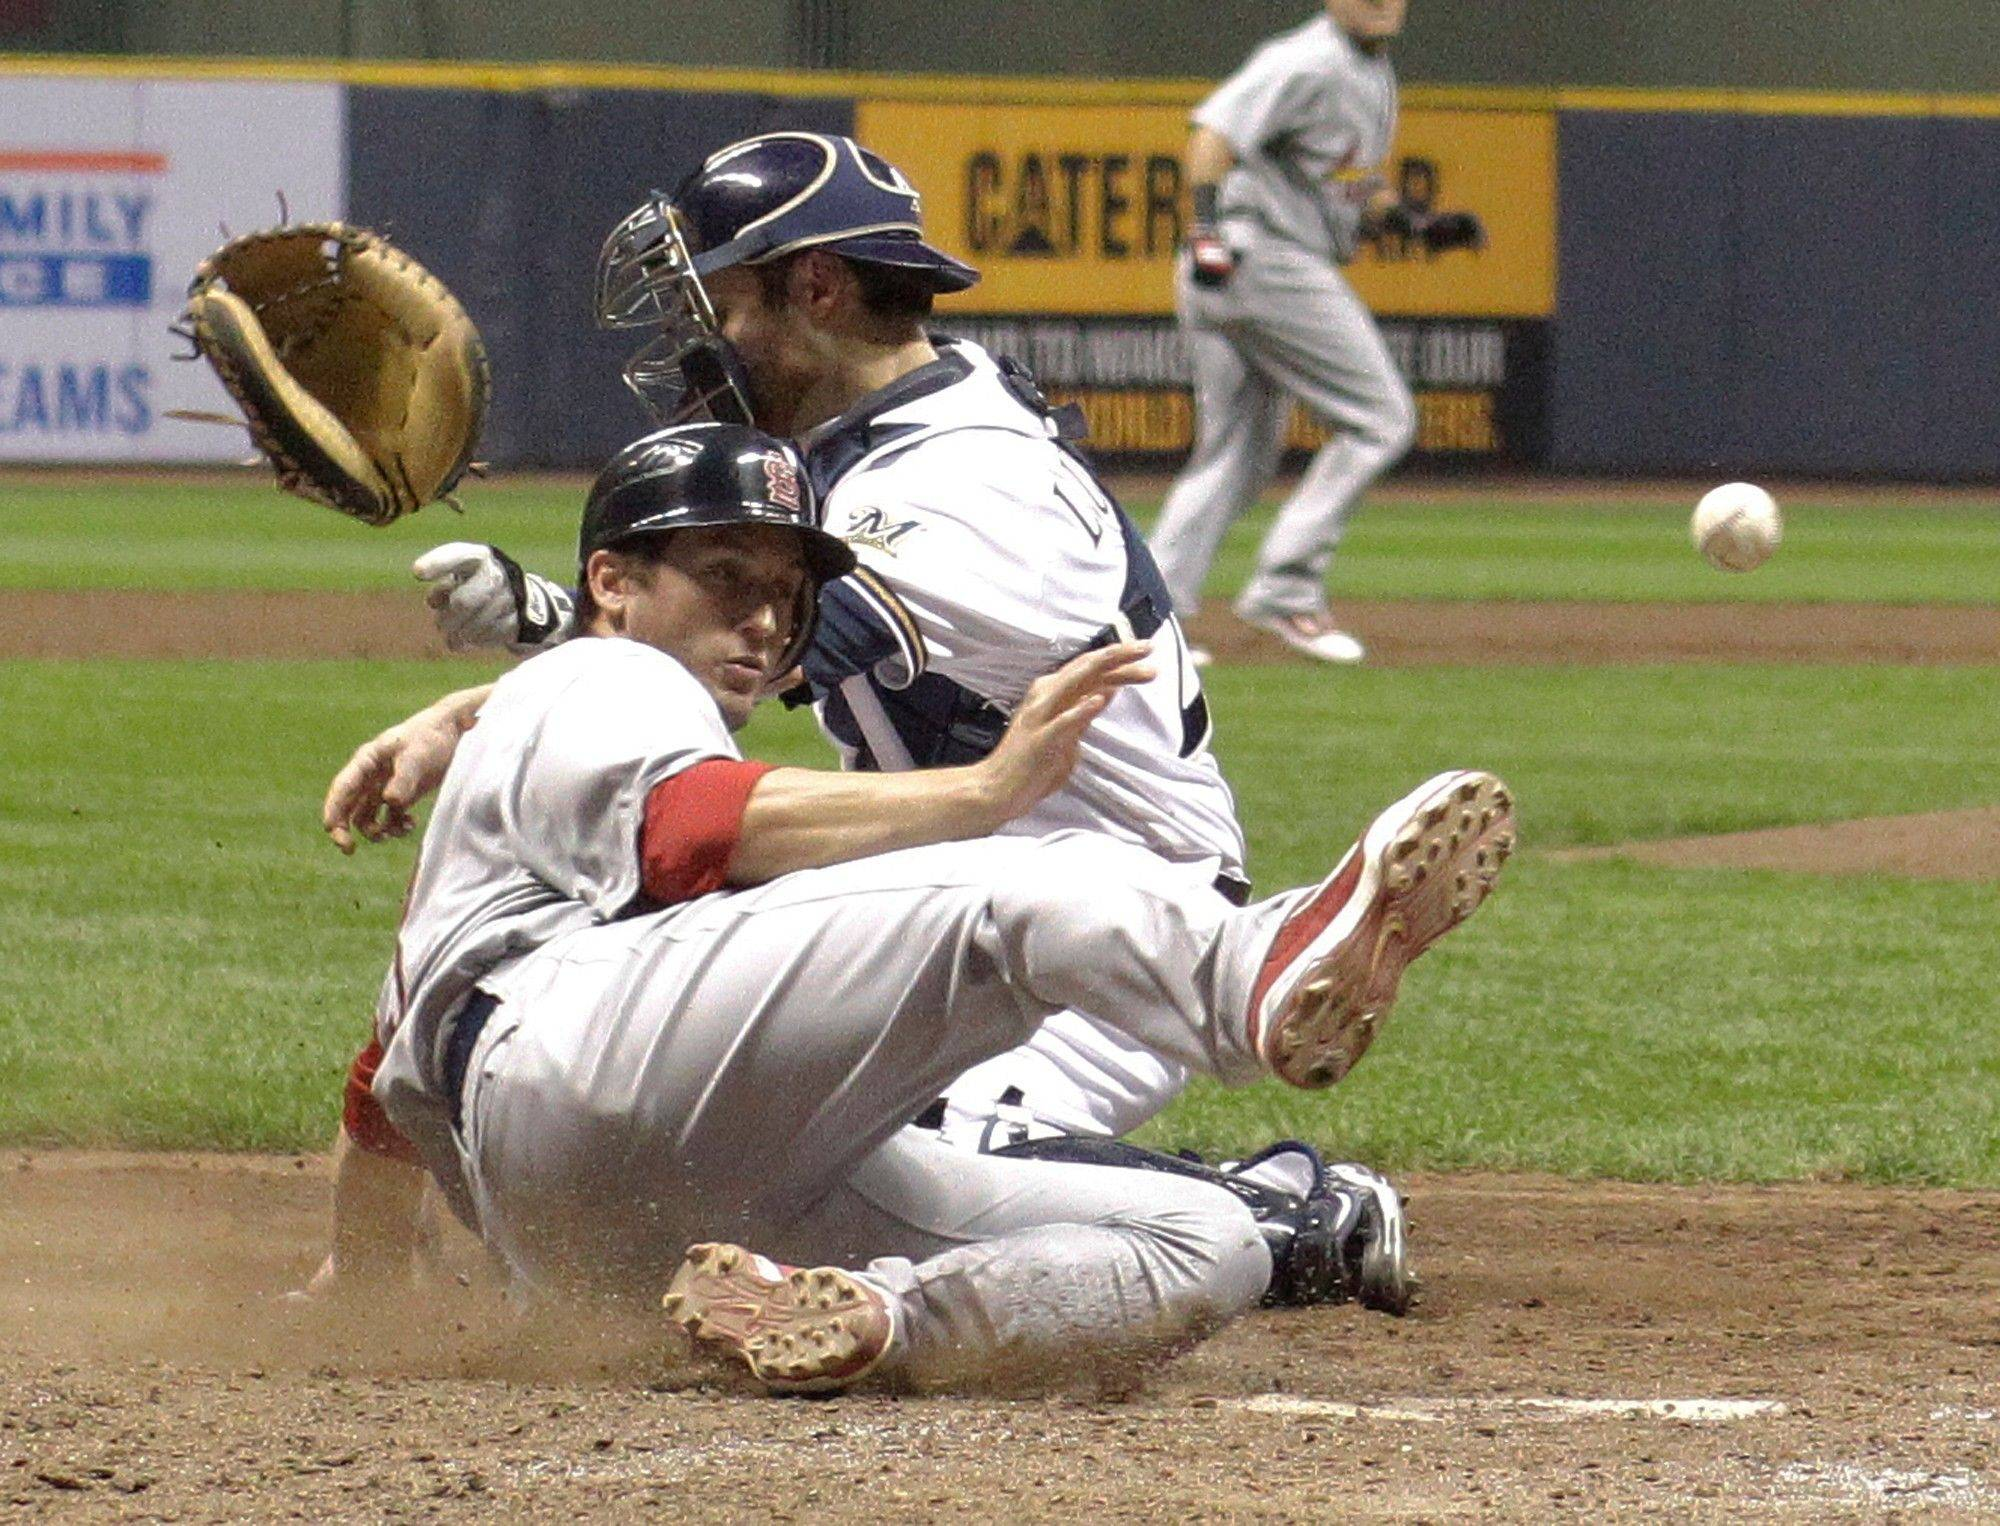 The Cardinals' David Freese knocks the glove and ball away from Milwaukee Brewers catcher Jonathan Lucroy as he scores on a sacrifice fly by Adron Chambers during the fifth inning Sunday.